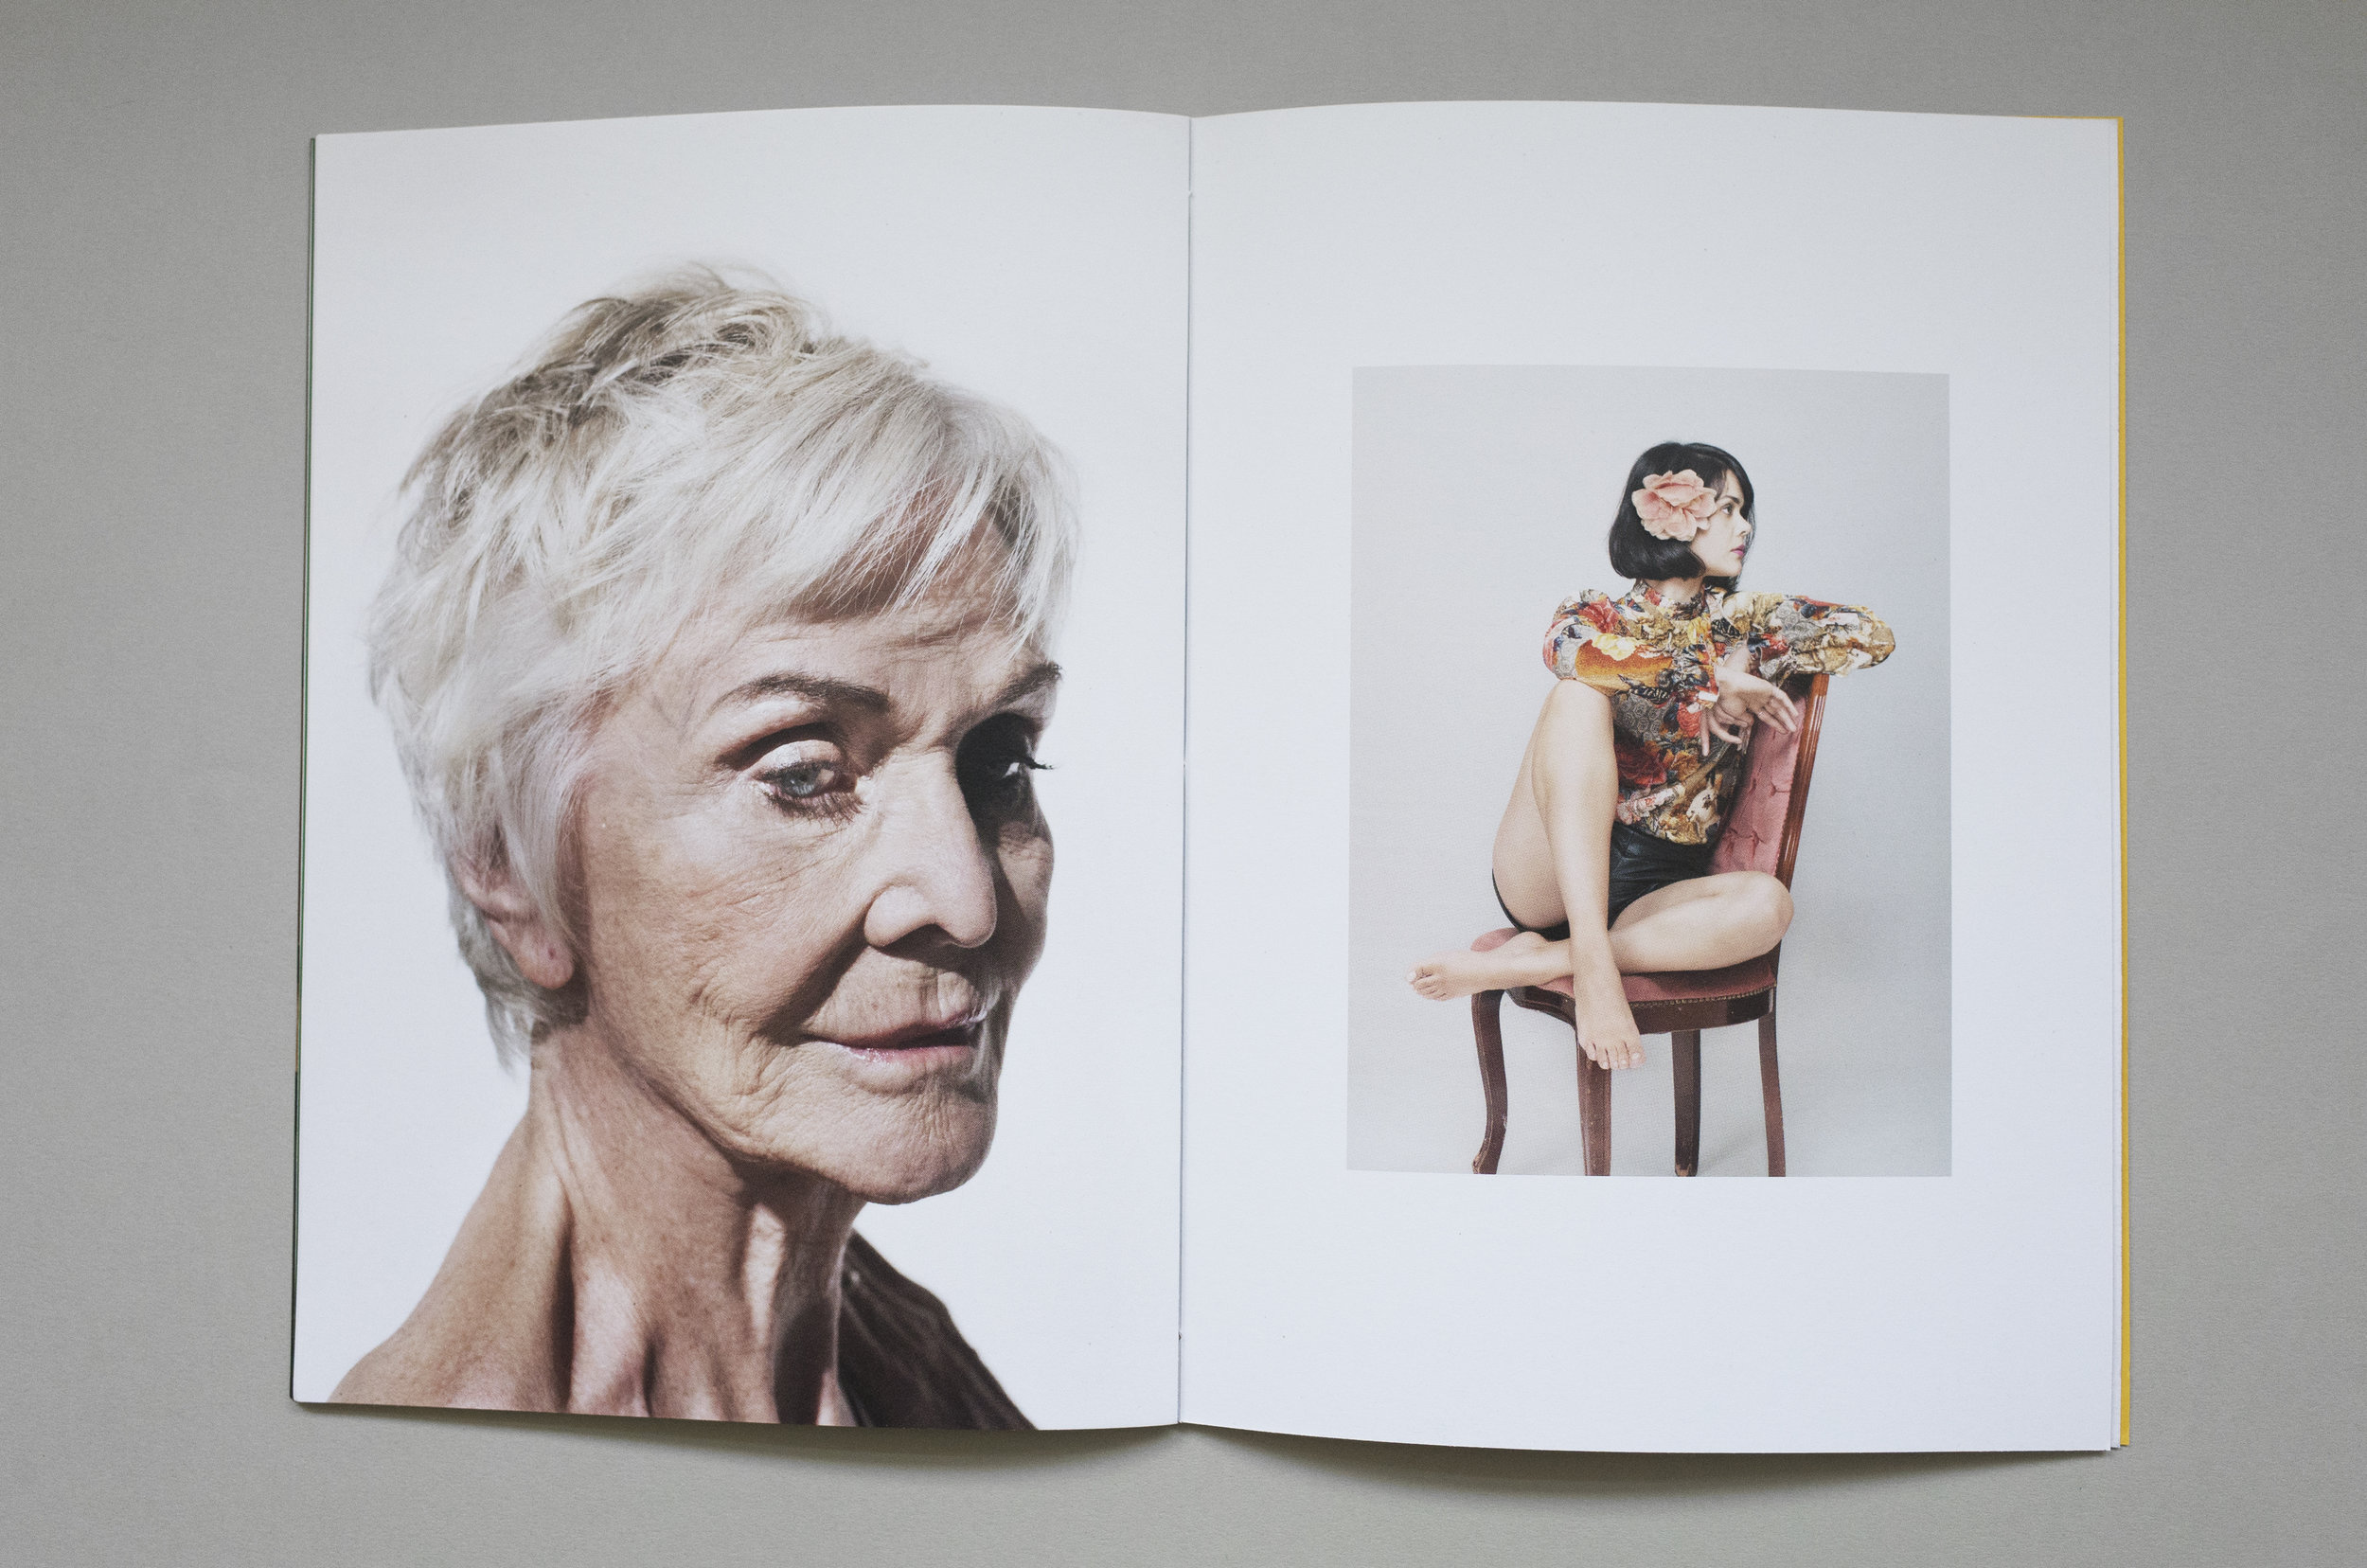 Chris Floyd promotional book, Sheila Hancock and Bat for Lashes